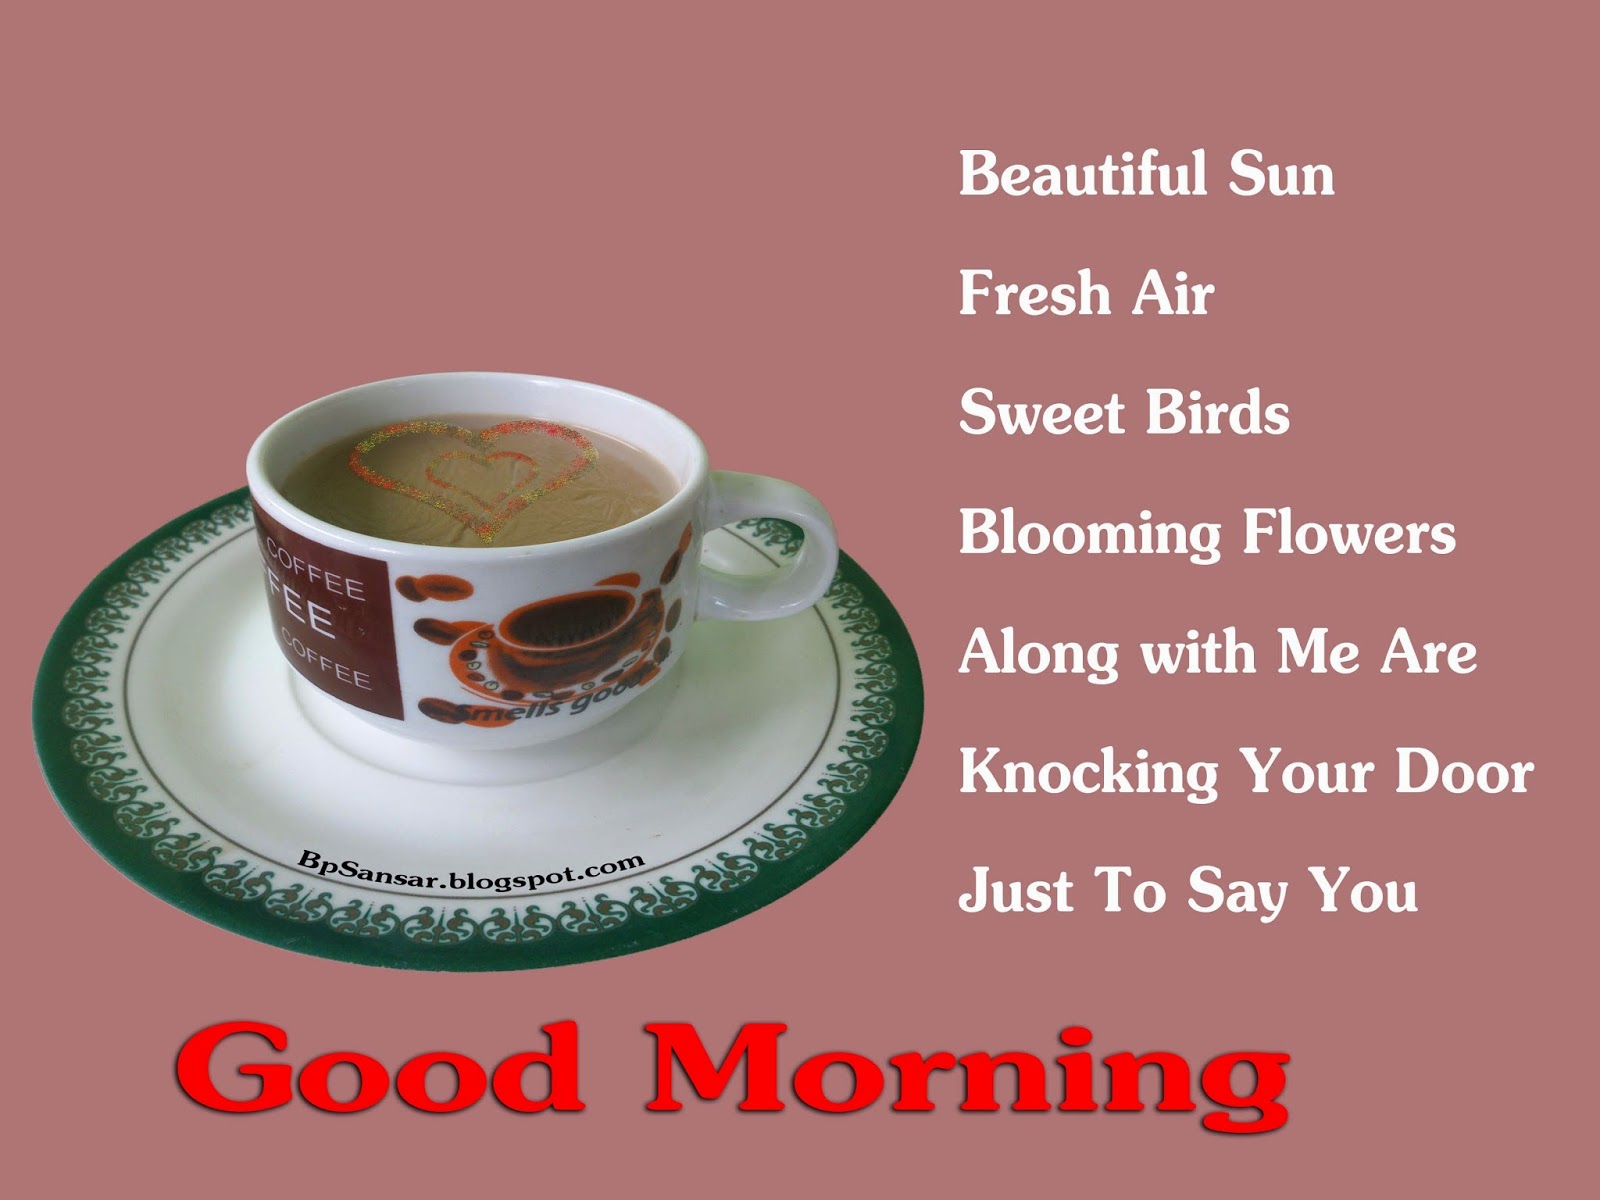 Good Morning Greeting To Share 2014 All Greeting Card Collection